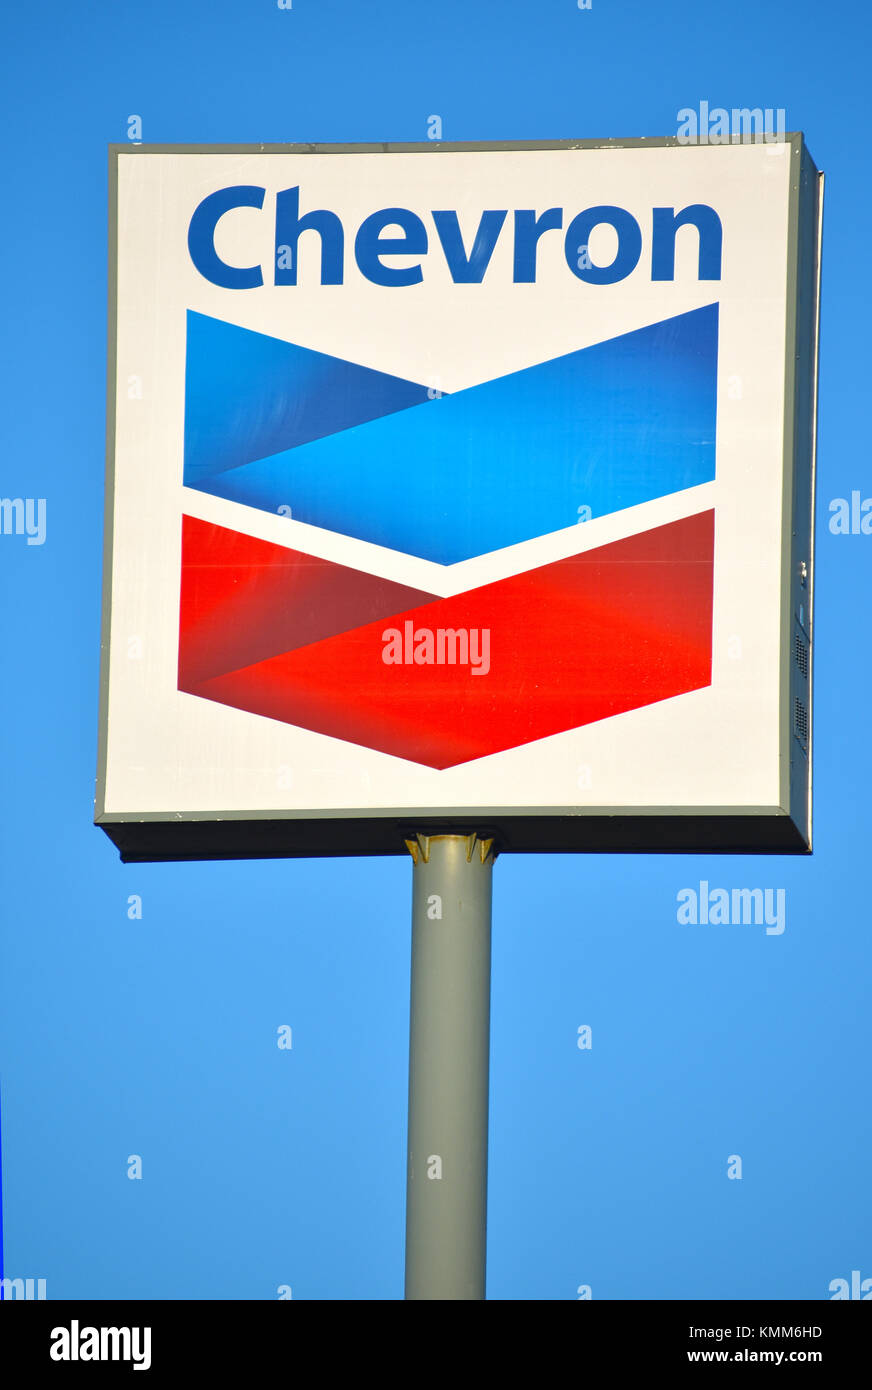 chevron texaco Log in to your chevron usa inc credit card account online to pay your bills, check your fico score, sign up for paperless billing, and manage your account preferences.